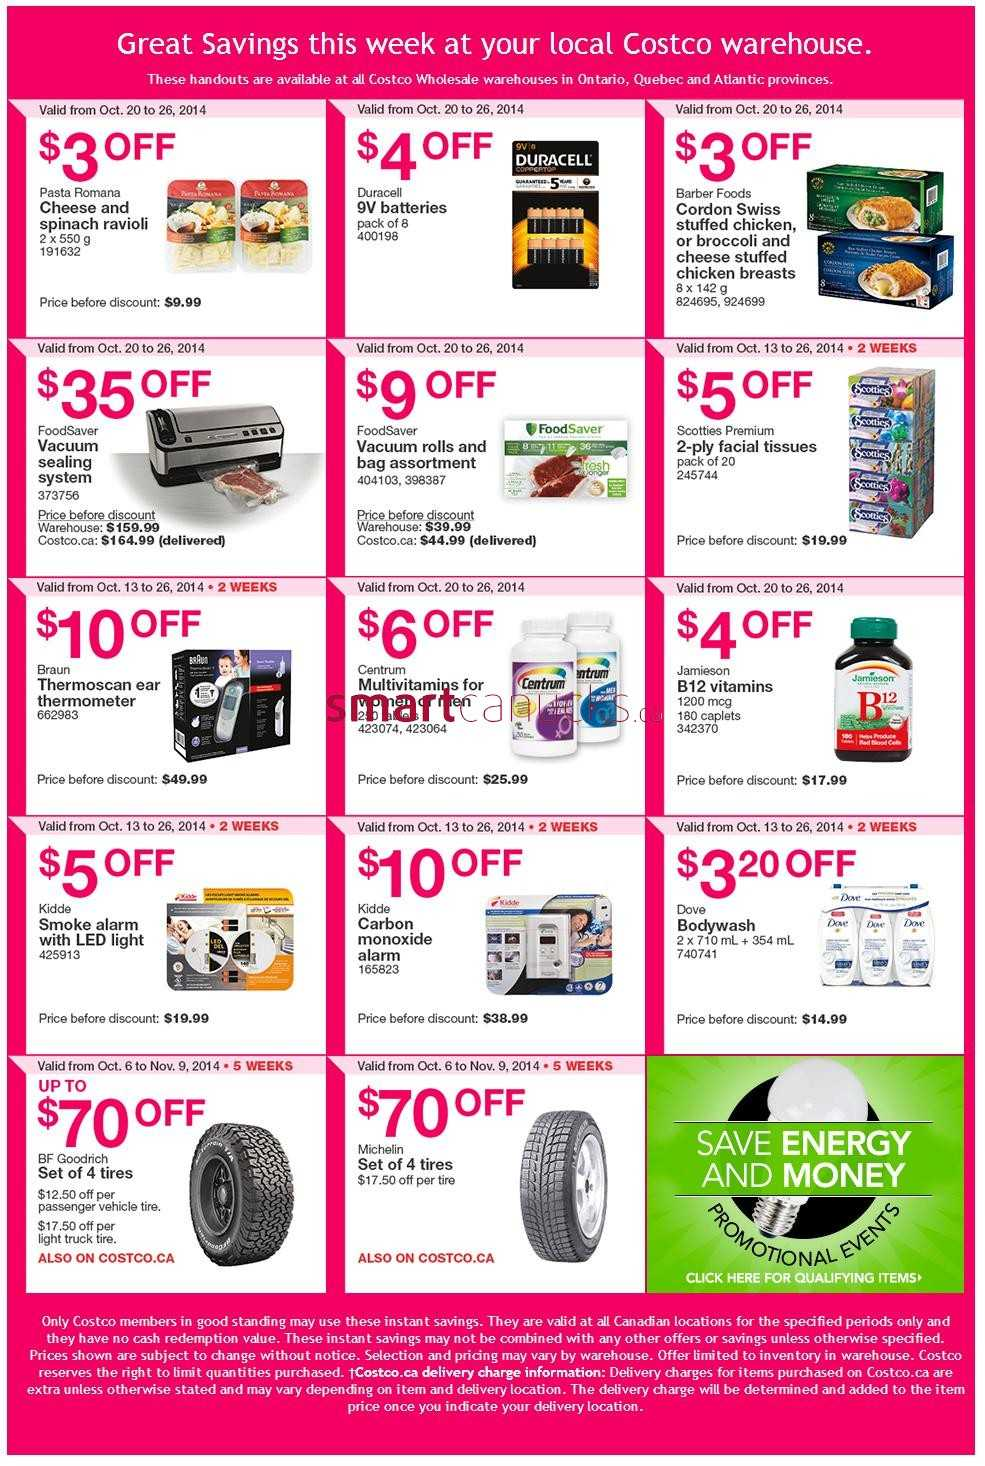 Costco weekly savings on qc amp atlantic canada october 20 to 26